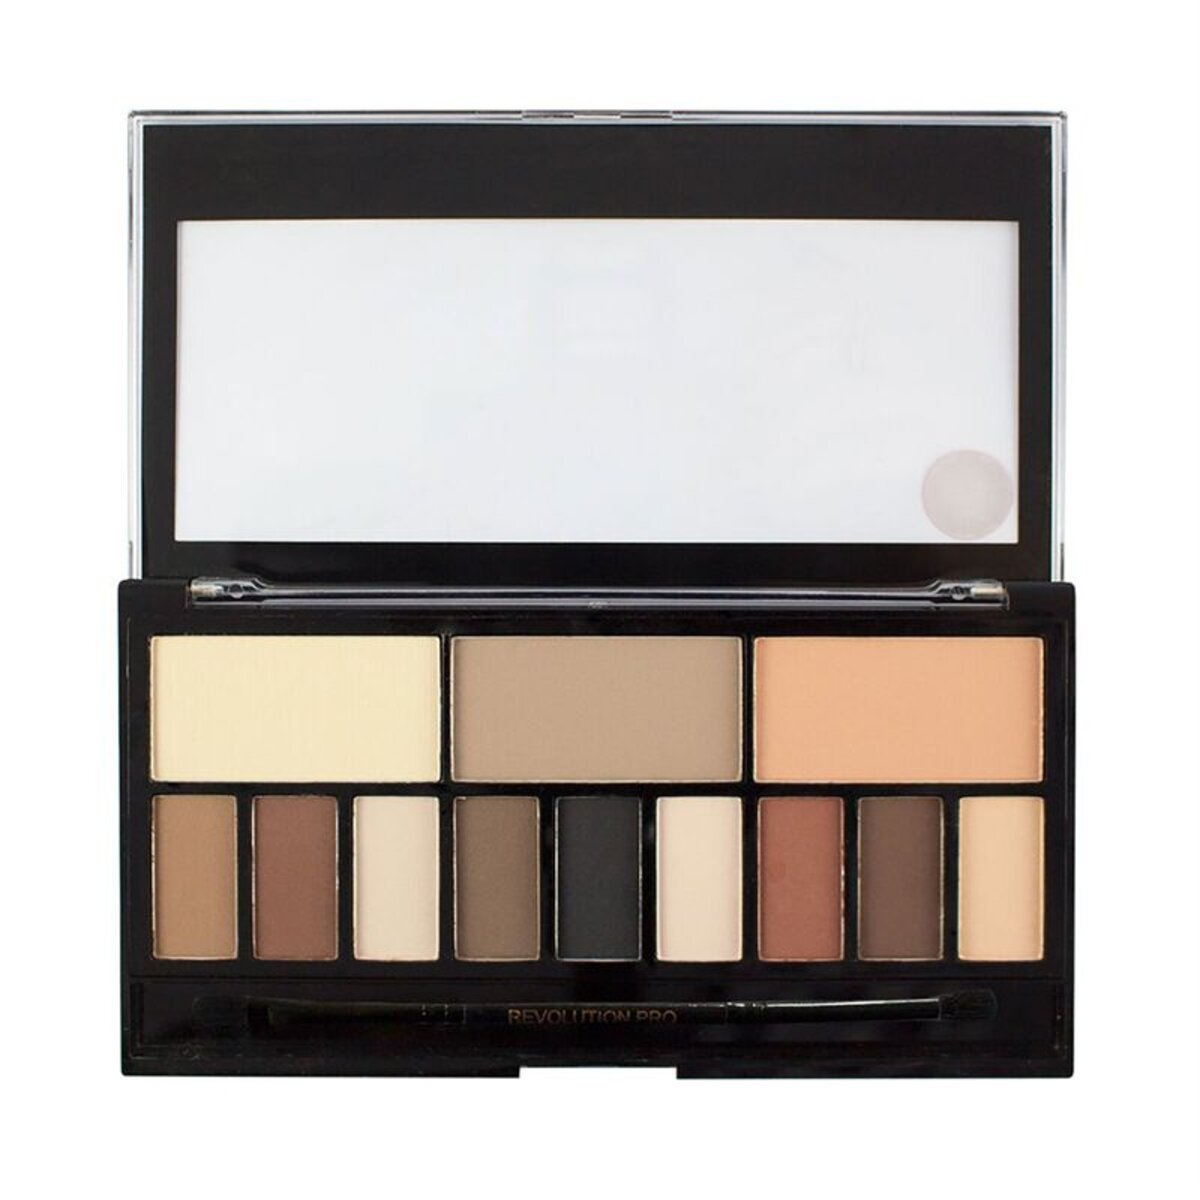 ULTRA EYE CONTOUR PALETTE - OUTLET  MAKE UP REVOLUTION